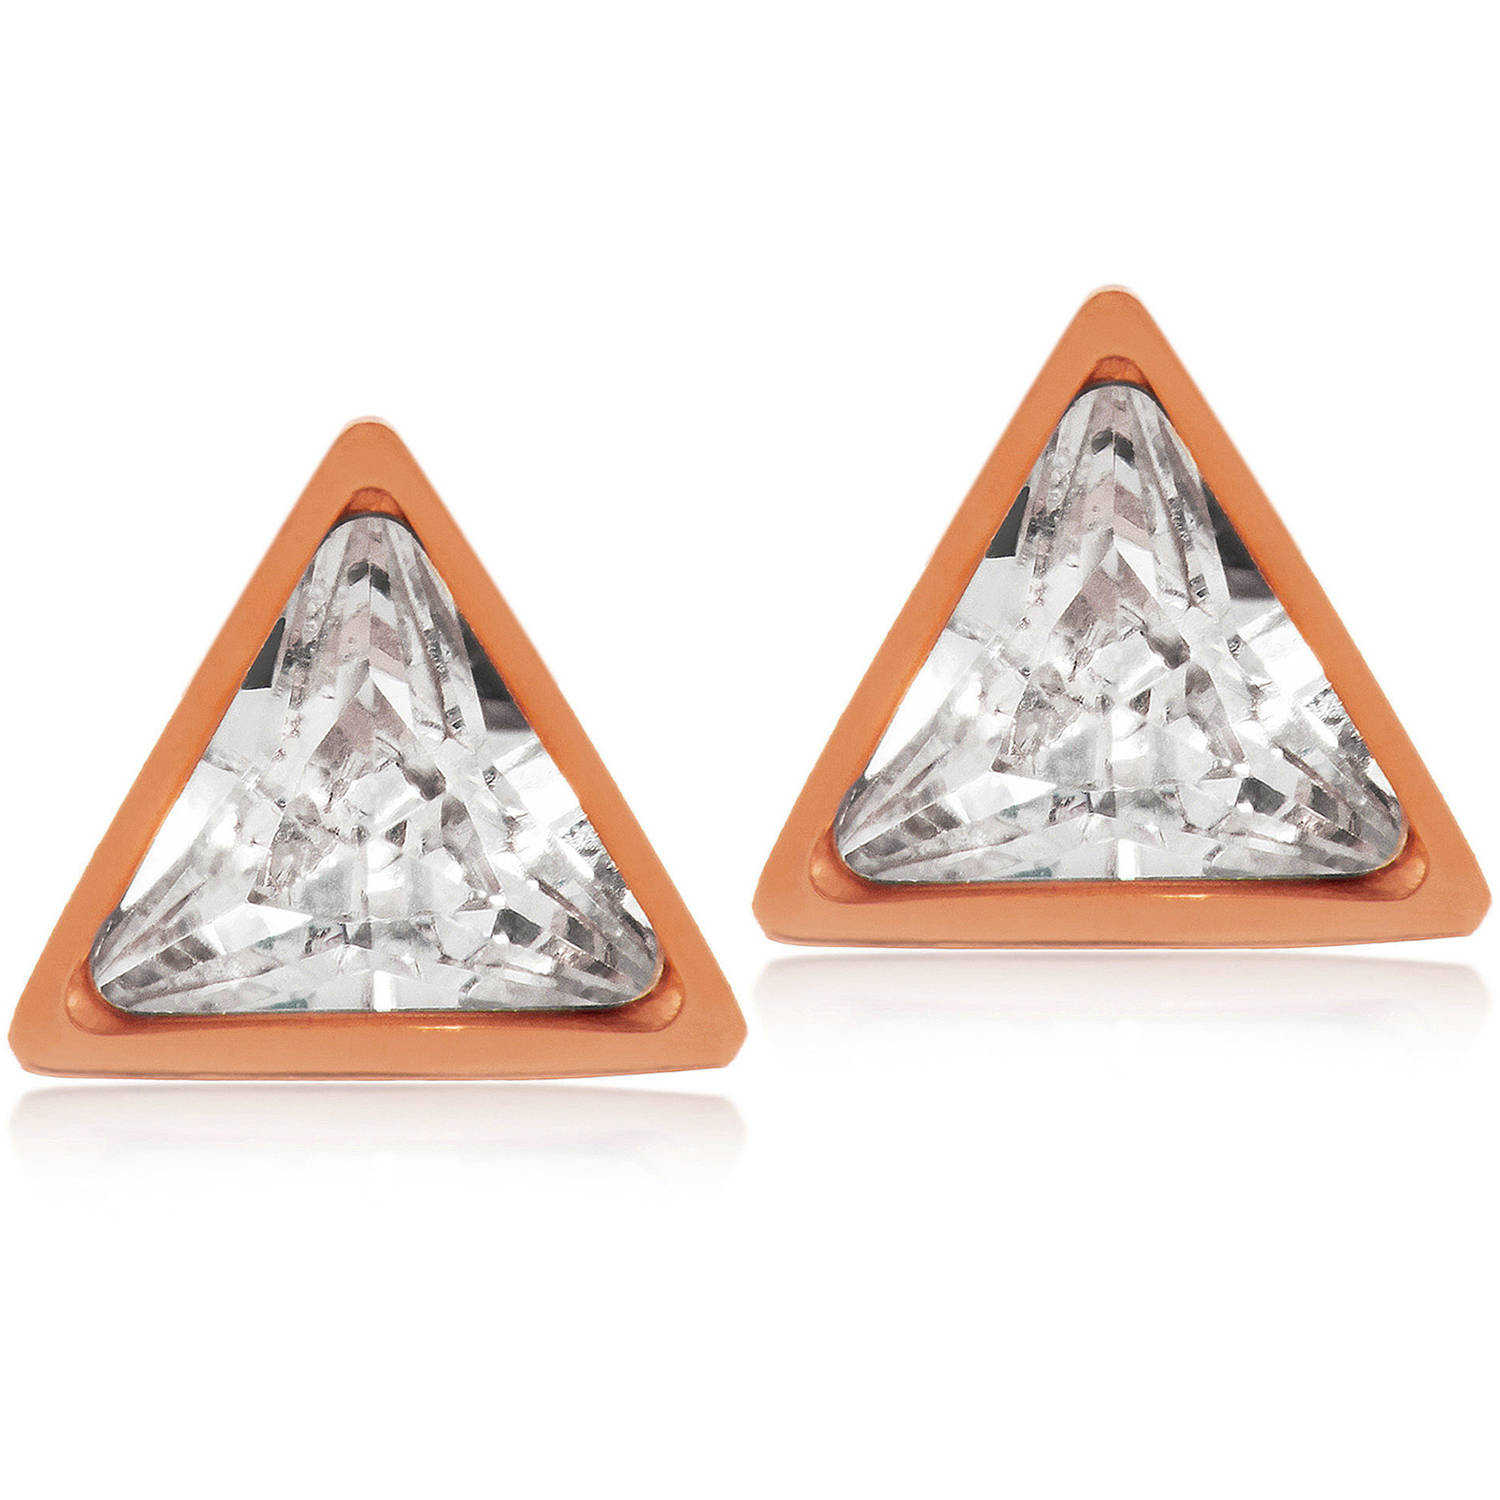 ELYA CZ Rose Gold IP Triangle Stainless Steel Stud Earrings